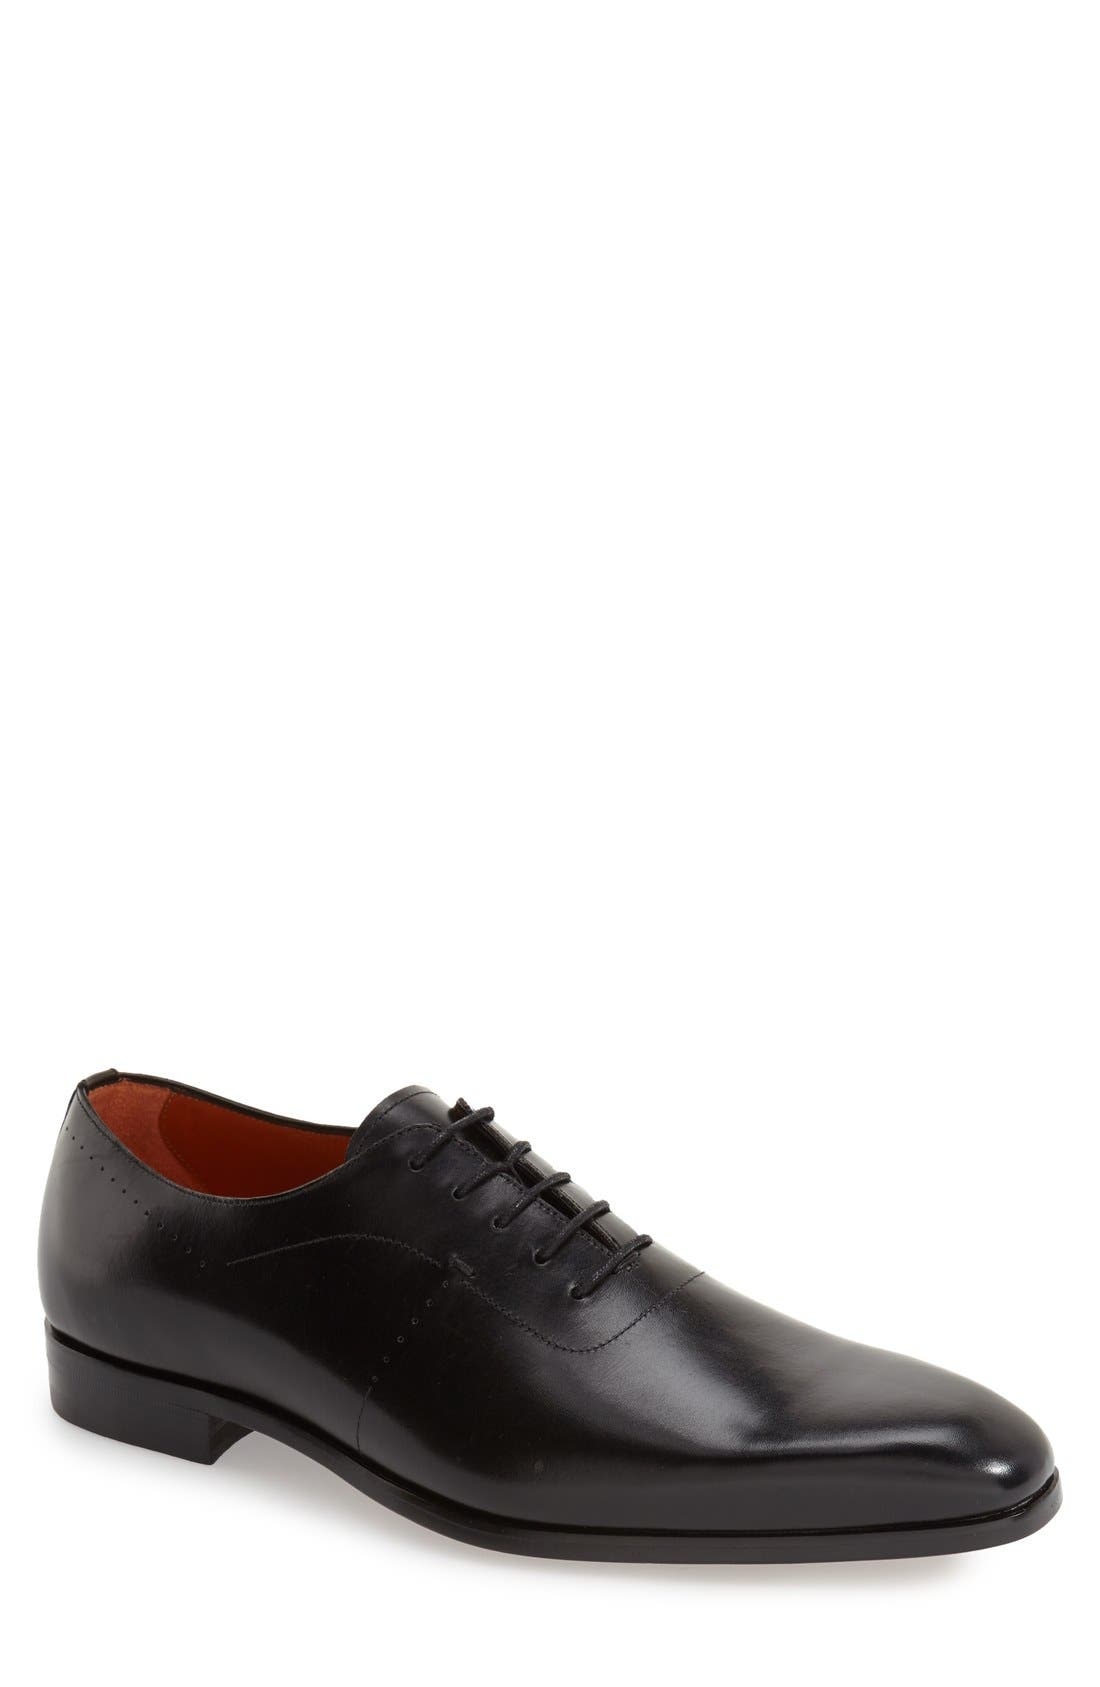 Mezlan 'Canolo' Plain Toe Oxford (Men)